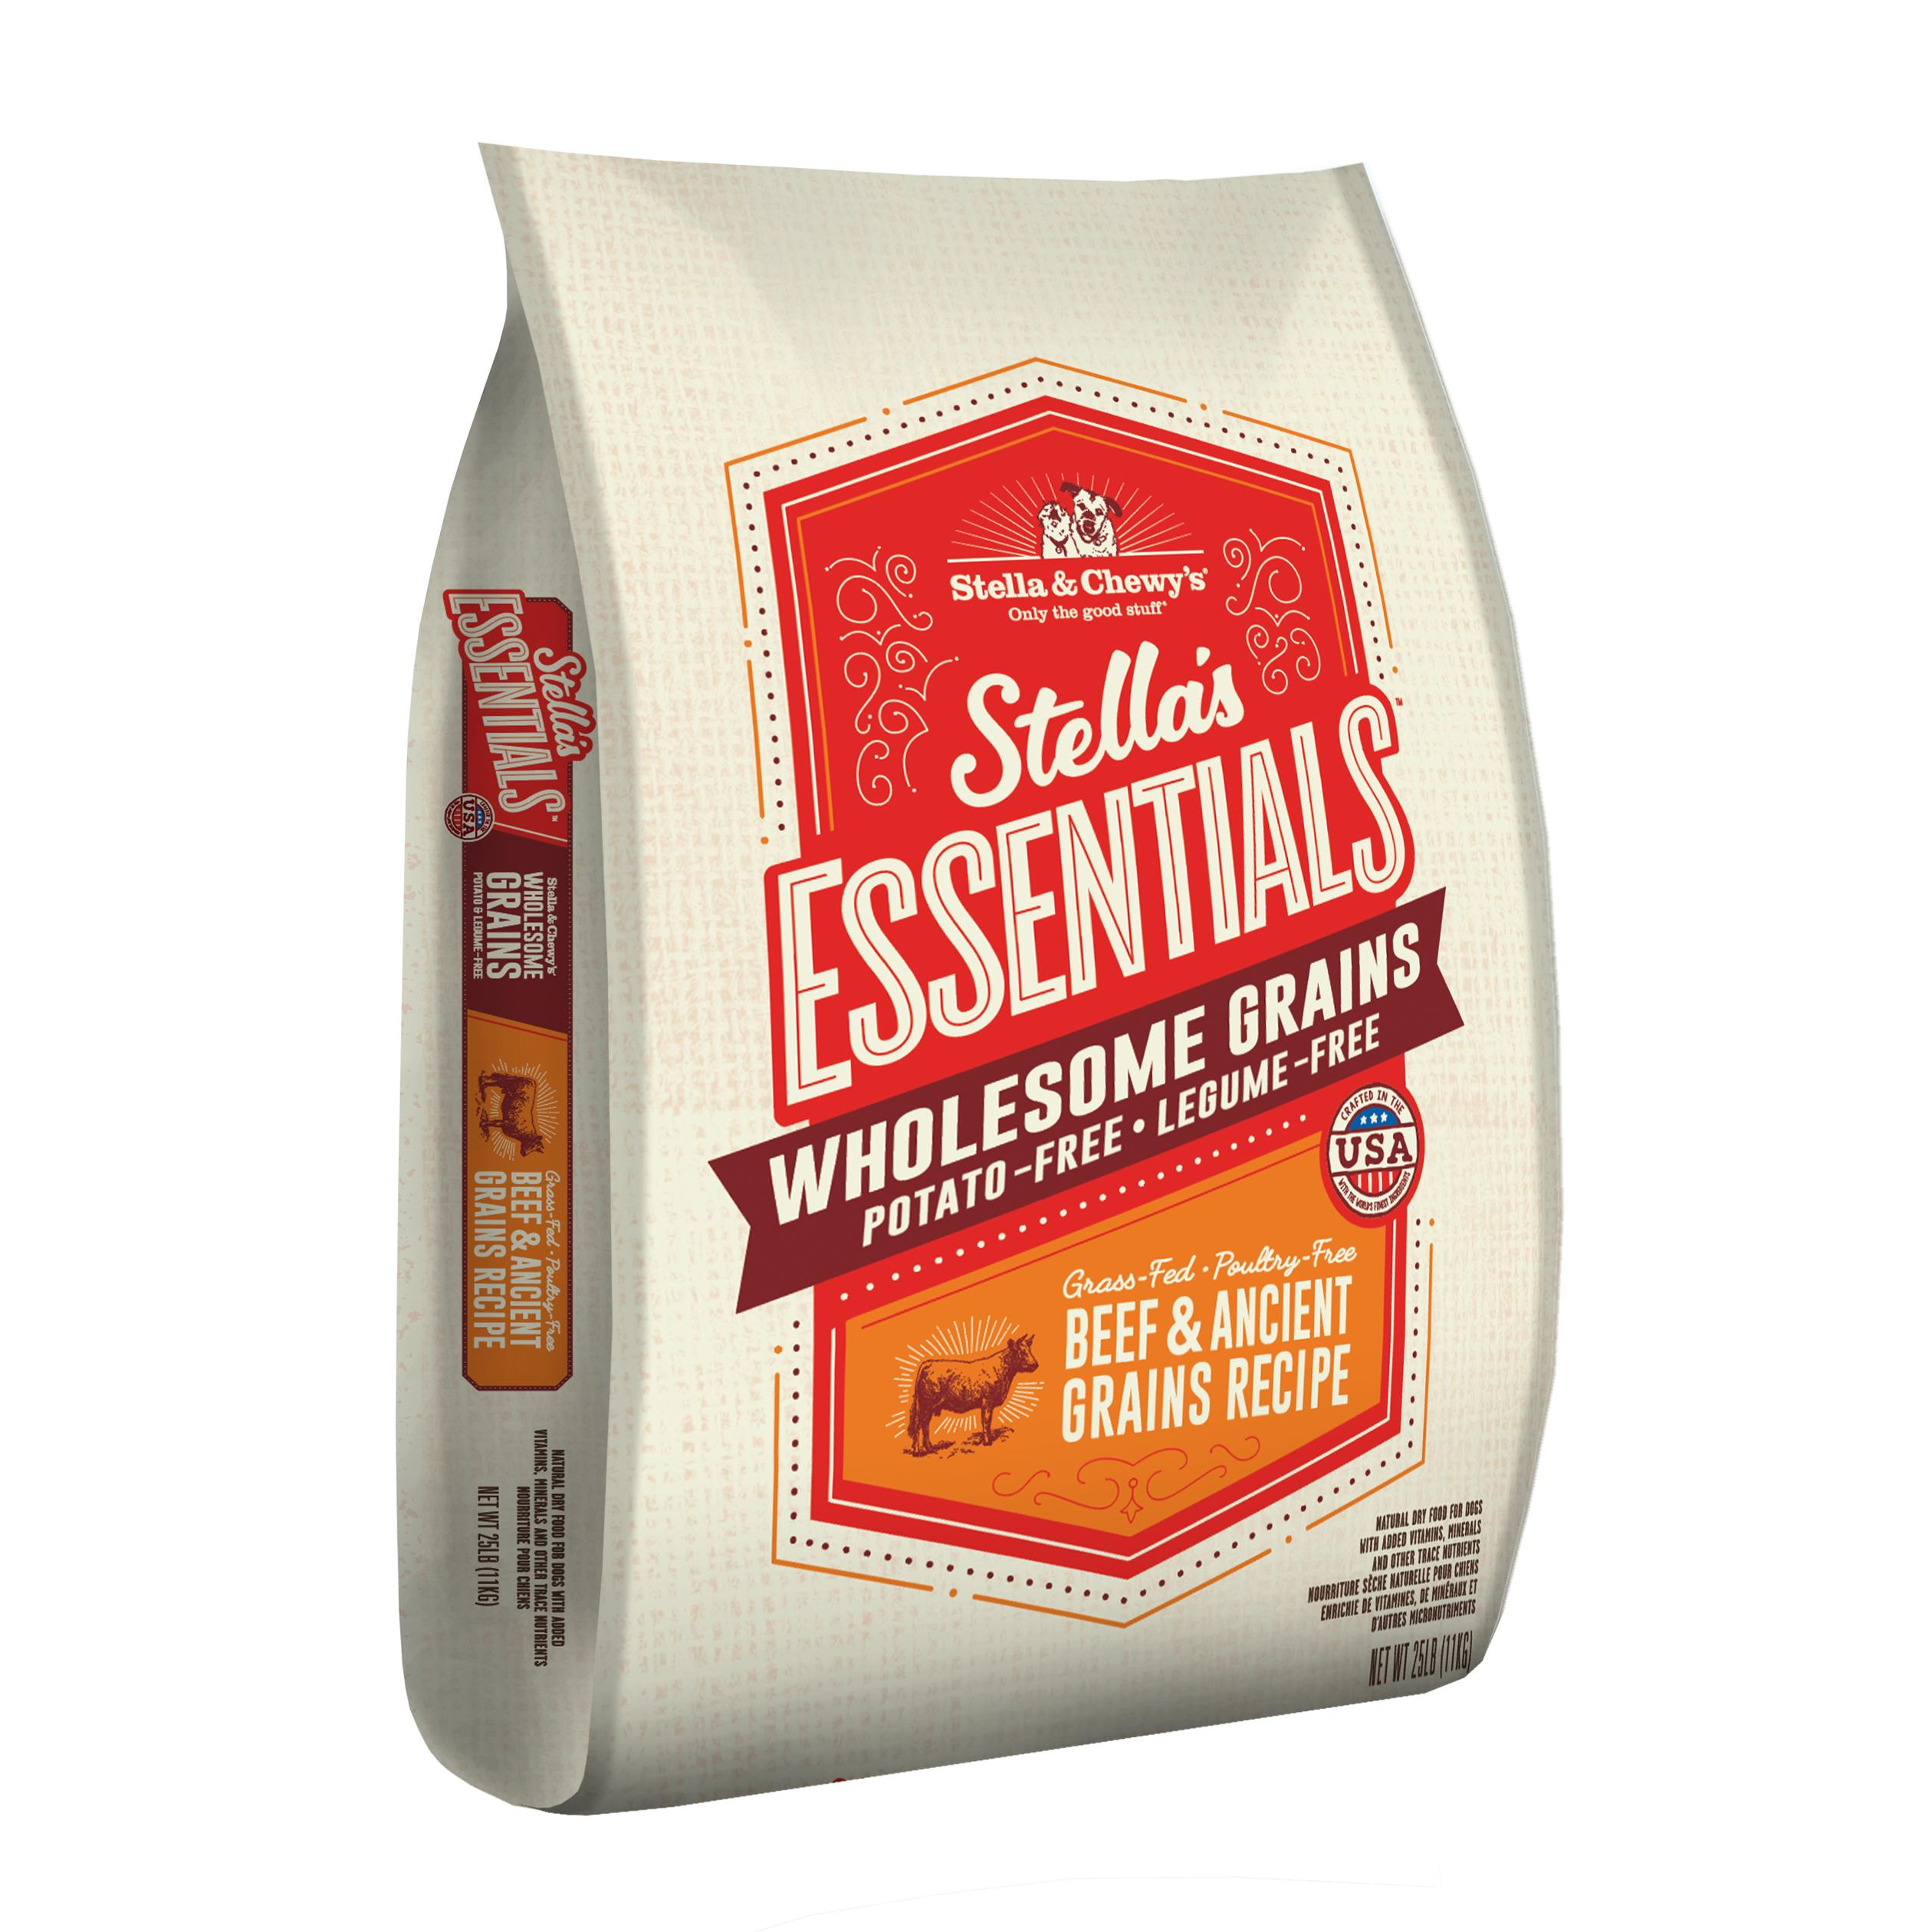 Stella & Chewy's Essentials Wholesome Grains Beef & Ancient Grains Dry Dog Food, 25-lb